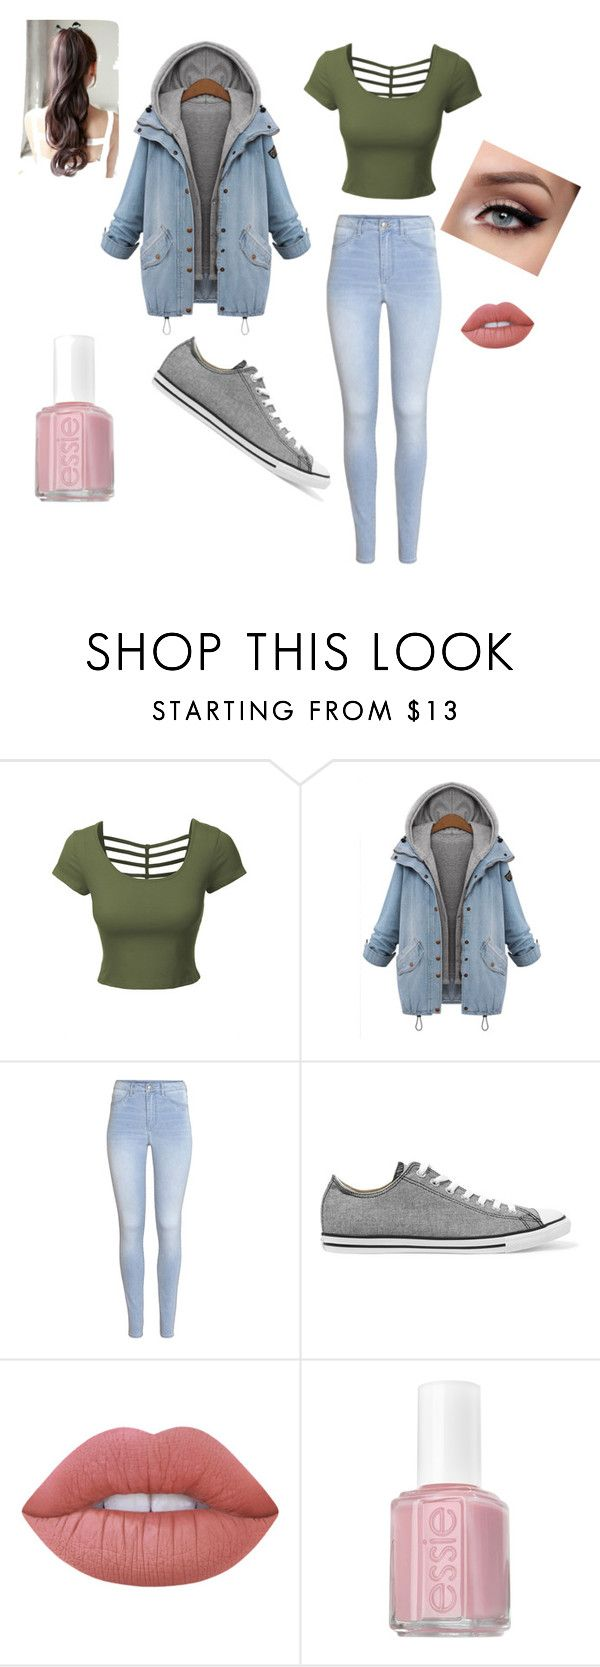 3076 best mode images on Pinterest   Casual wear, Cute outfits and ...